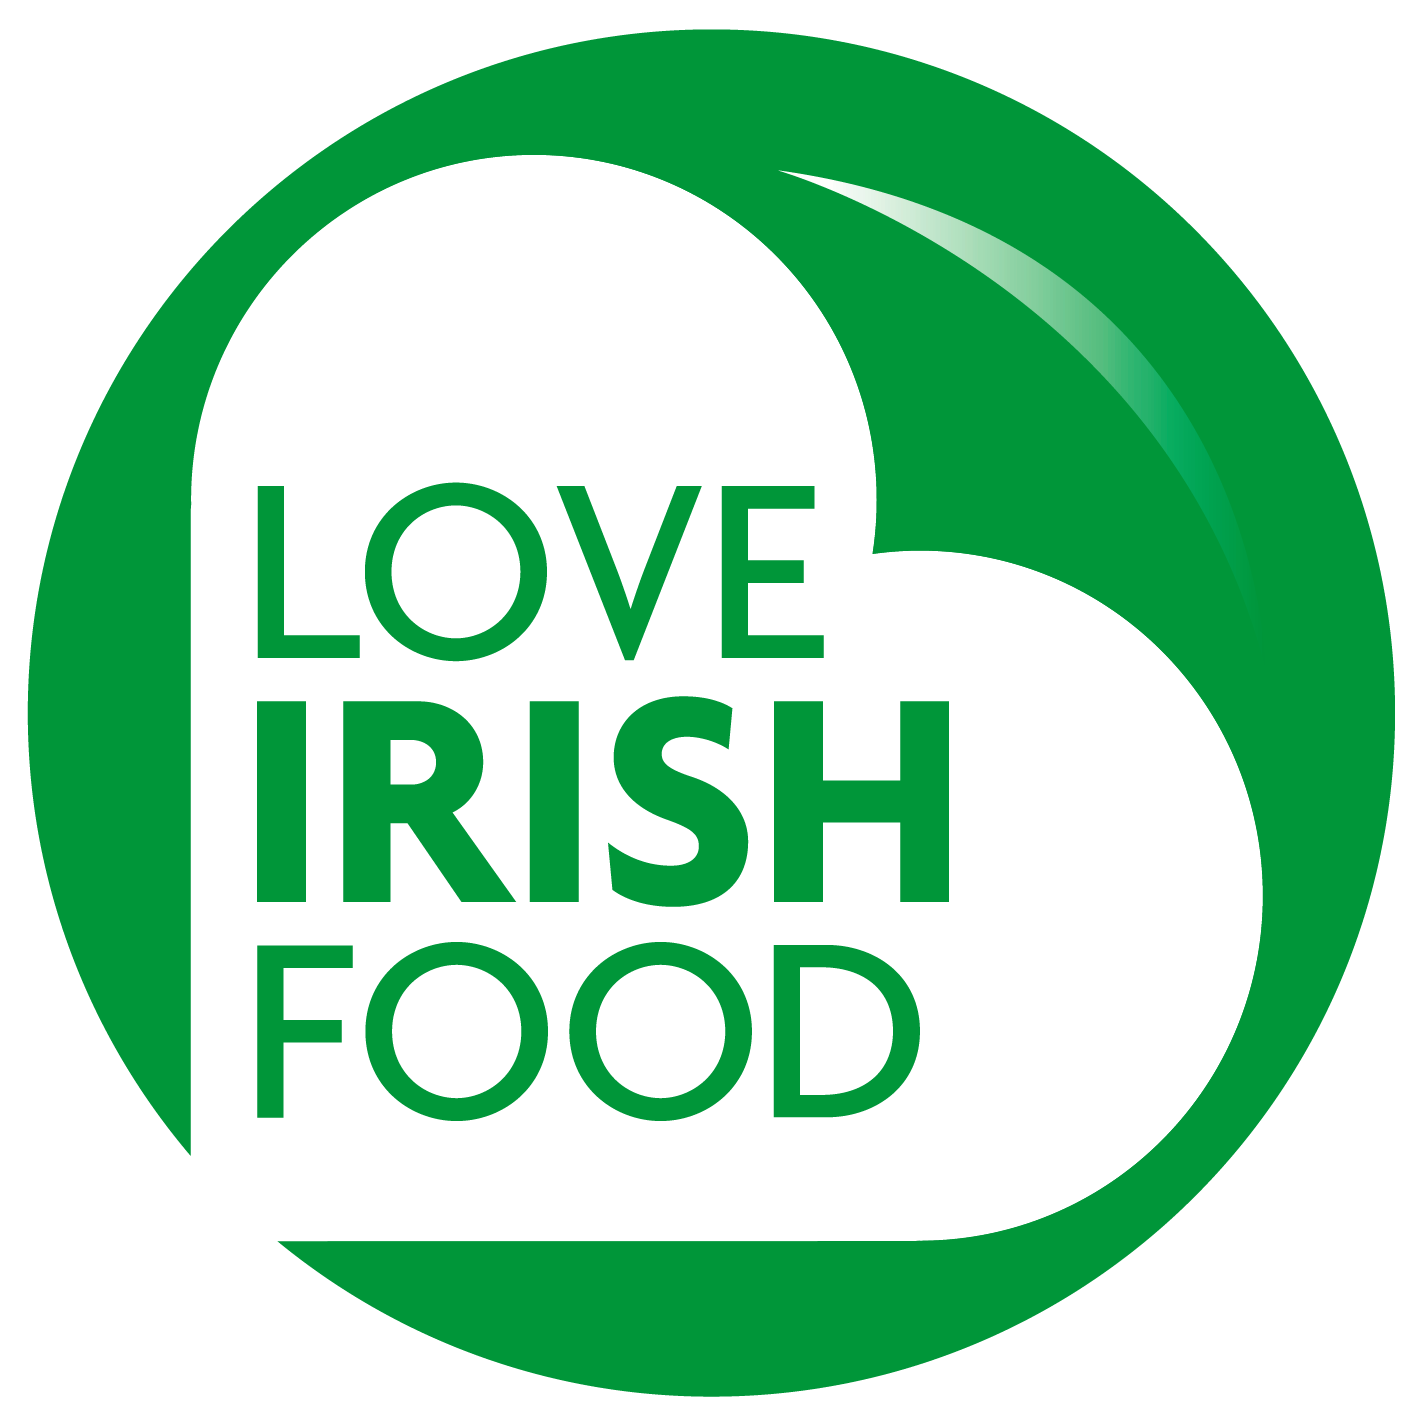 We are members of the Love Irish Food Association which aims to help shoppers make informed choices about buying Irish manufactured food and drink, in turn helping to safeguard Irish jobs.   www.loveirishfood.ie